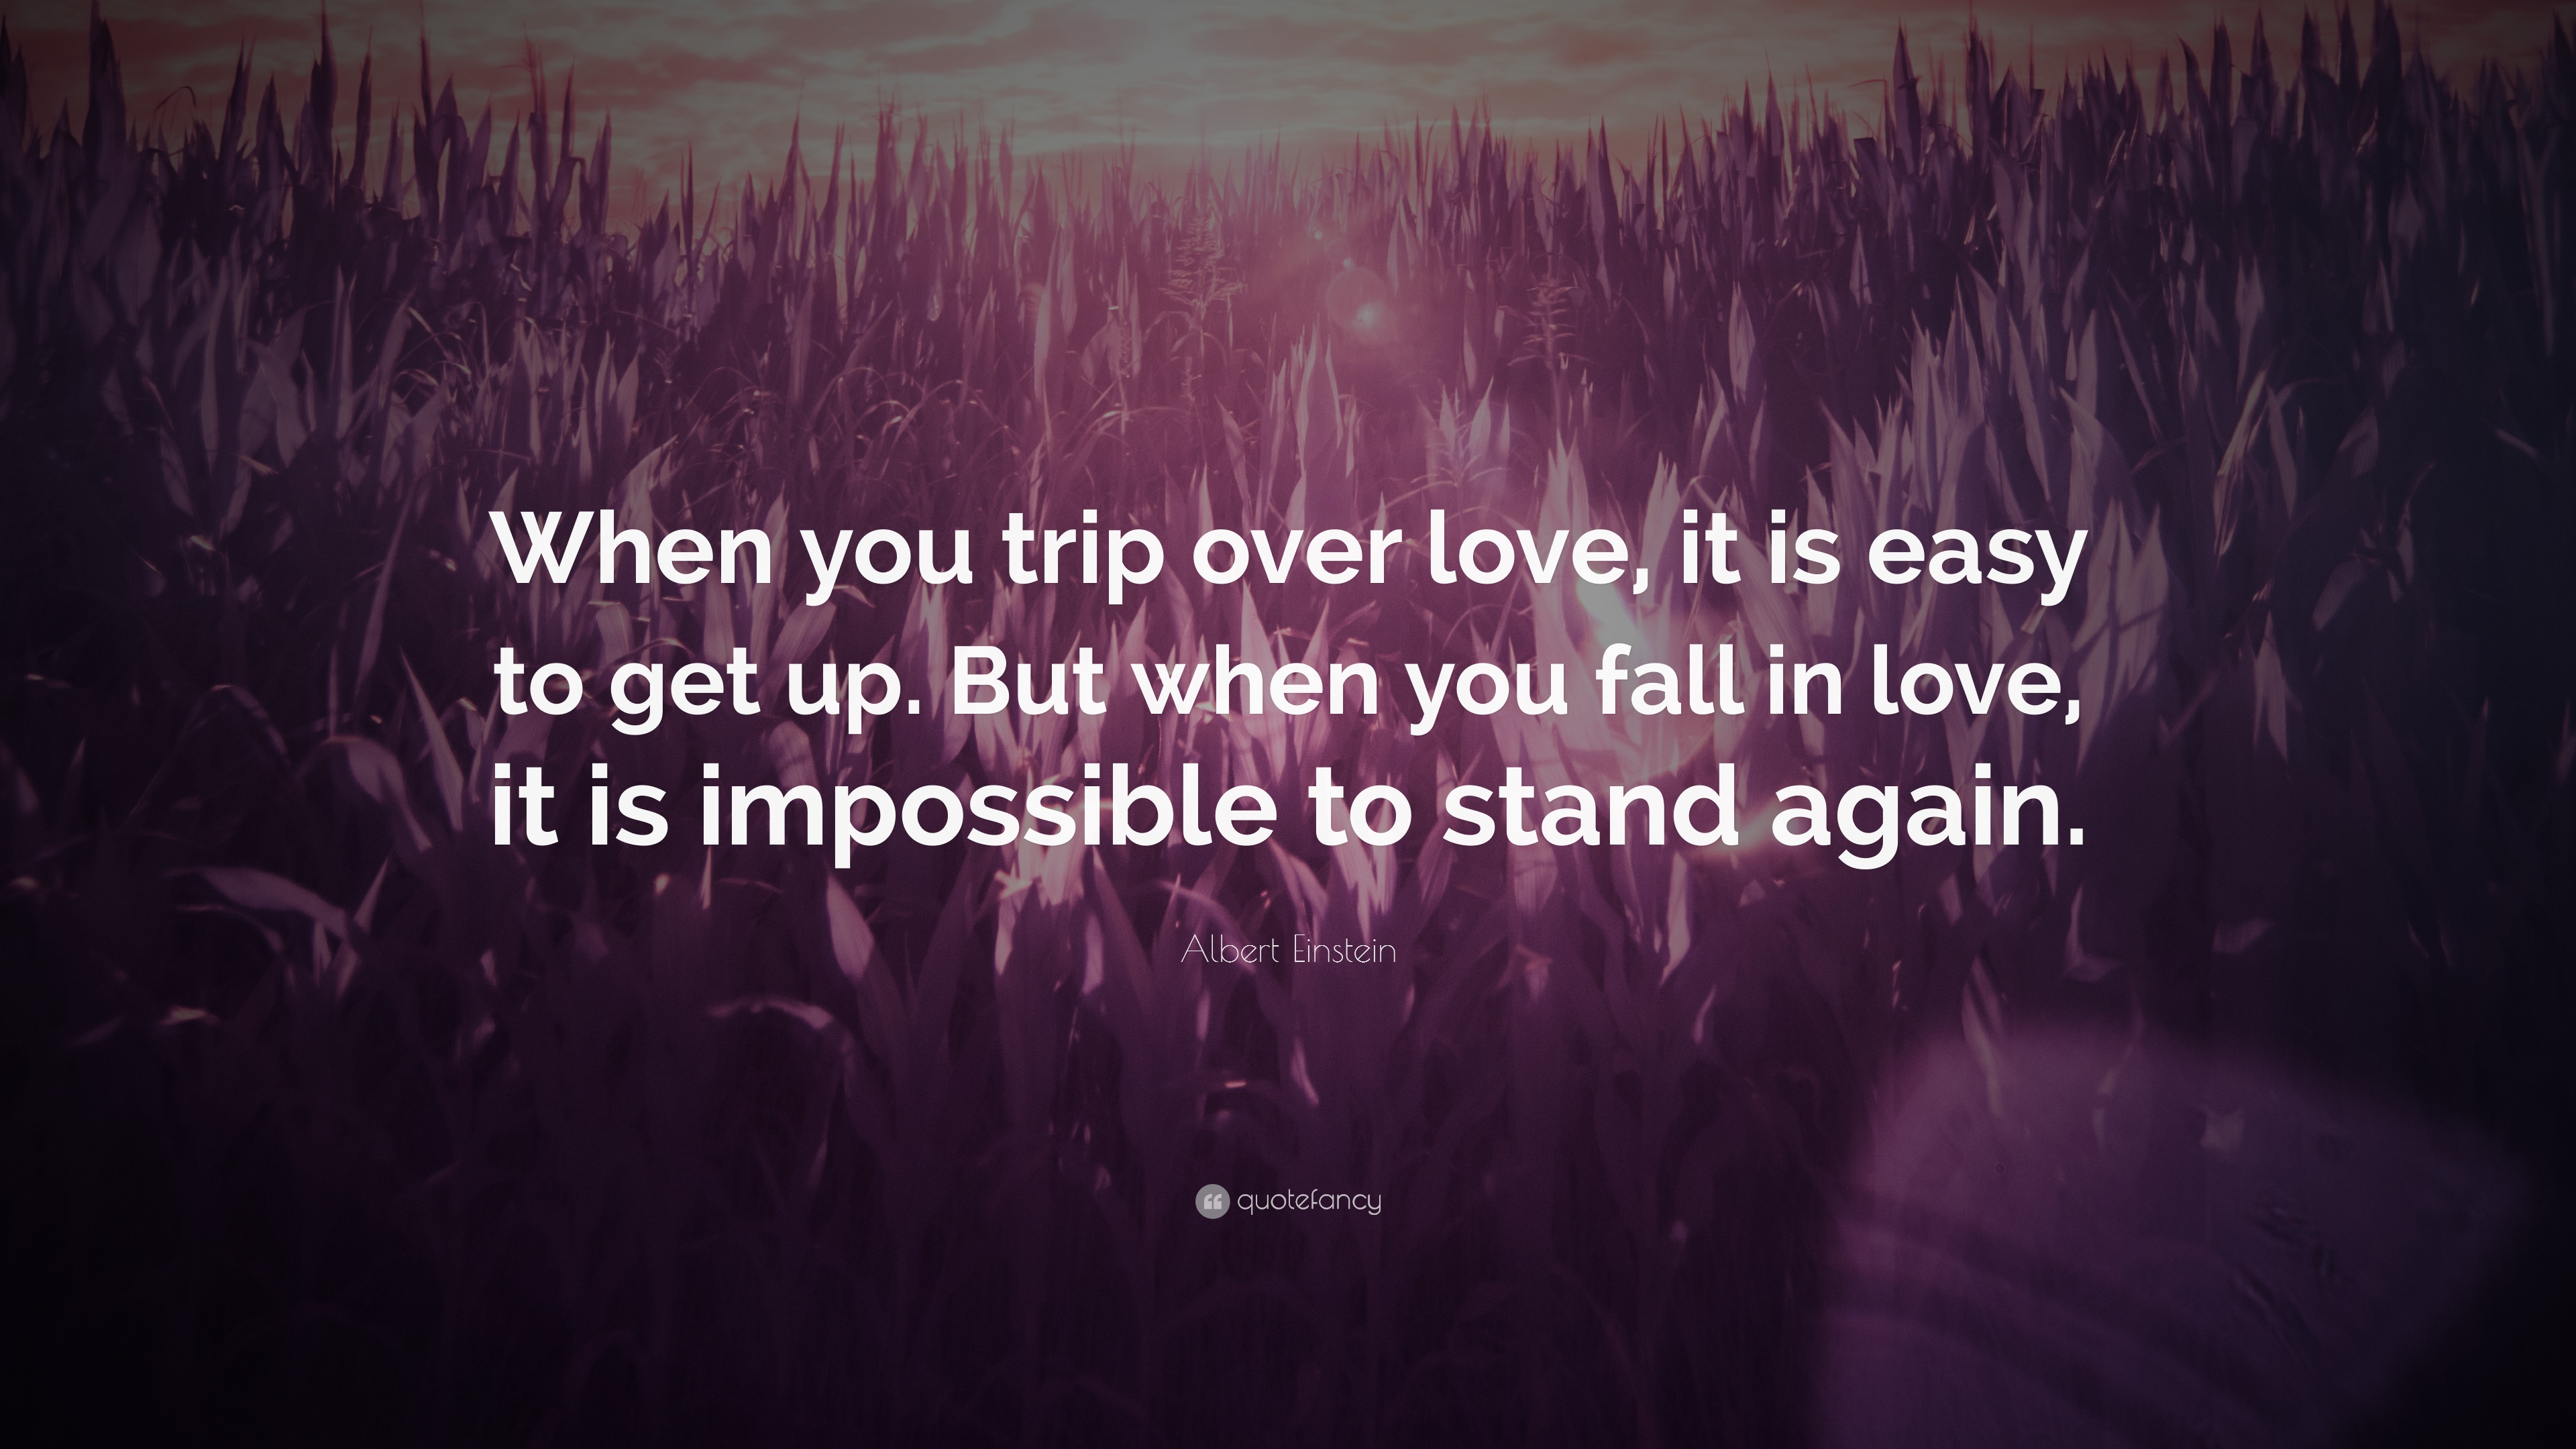 In Love Quotes Magnificent Love Quotes 26 Wallpapers  Quotefancy